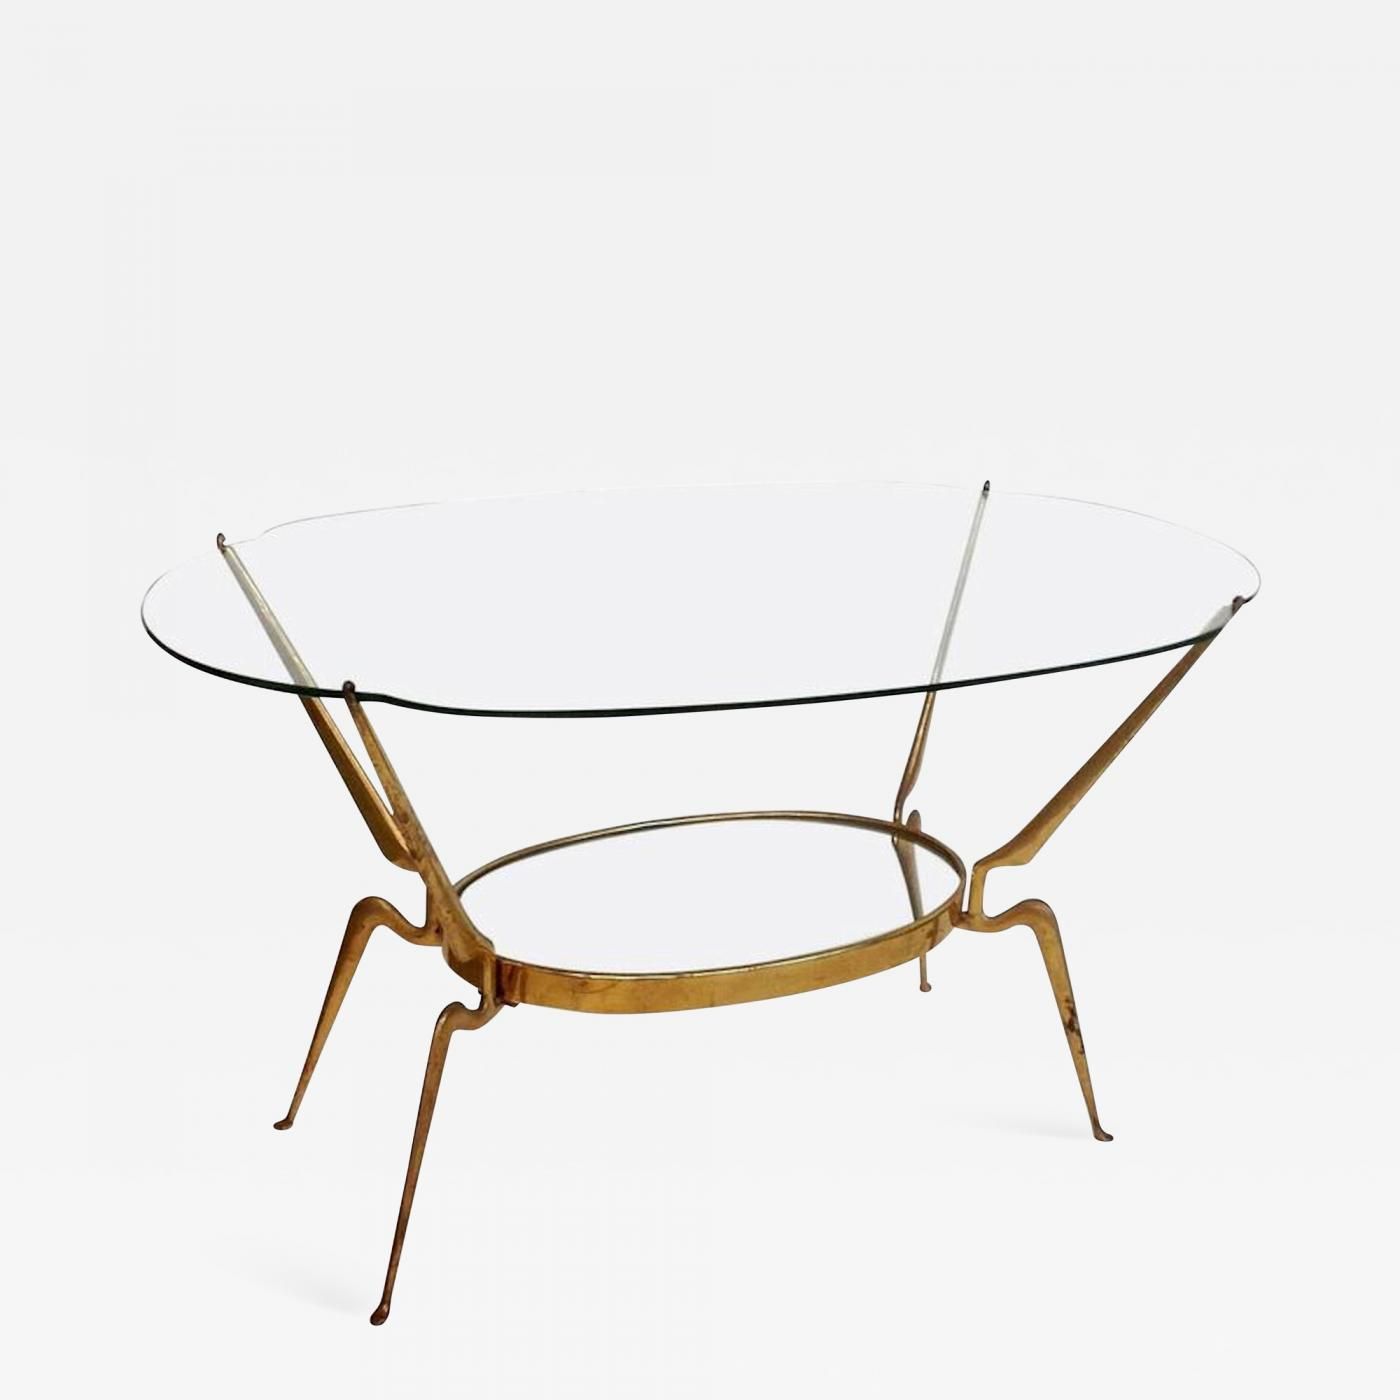 Cesare Lacca Brass Glass Coffee Table By Cesare Lacca Italy Mid Century Modern 1950s